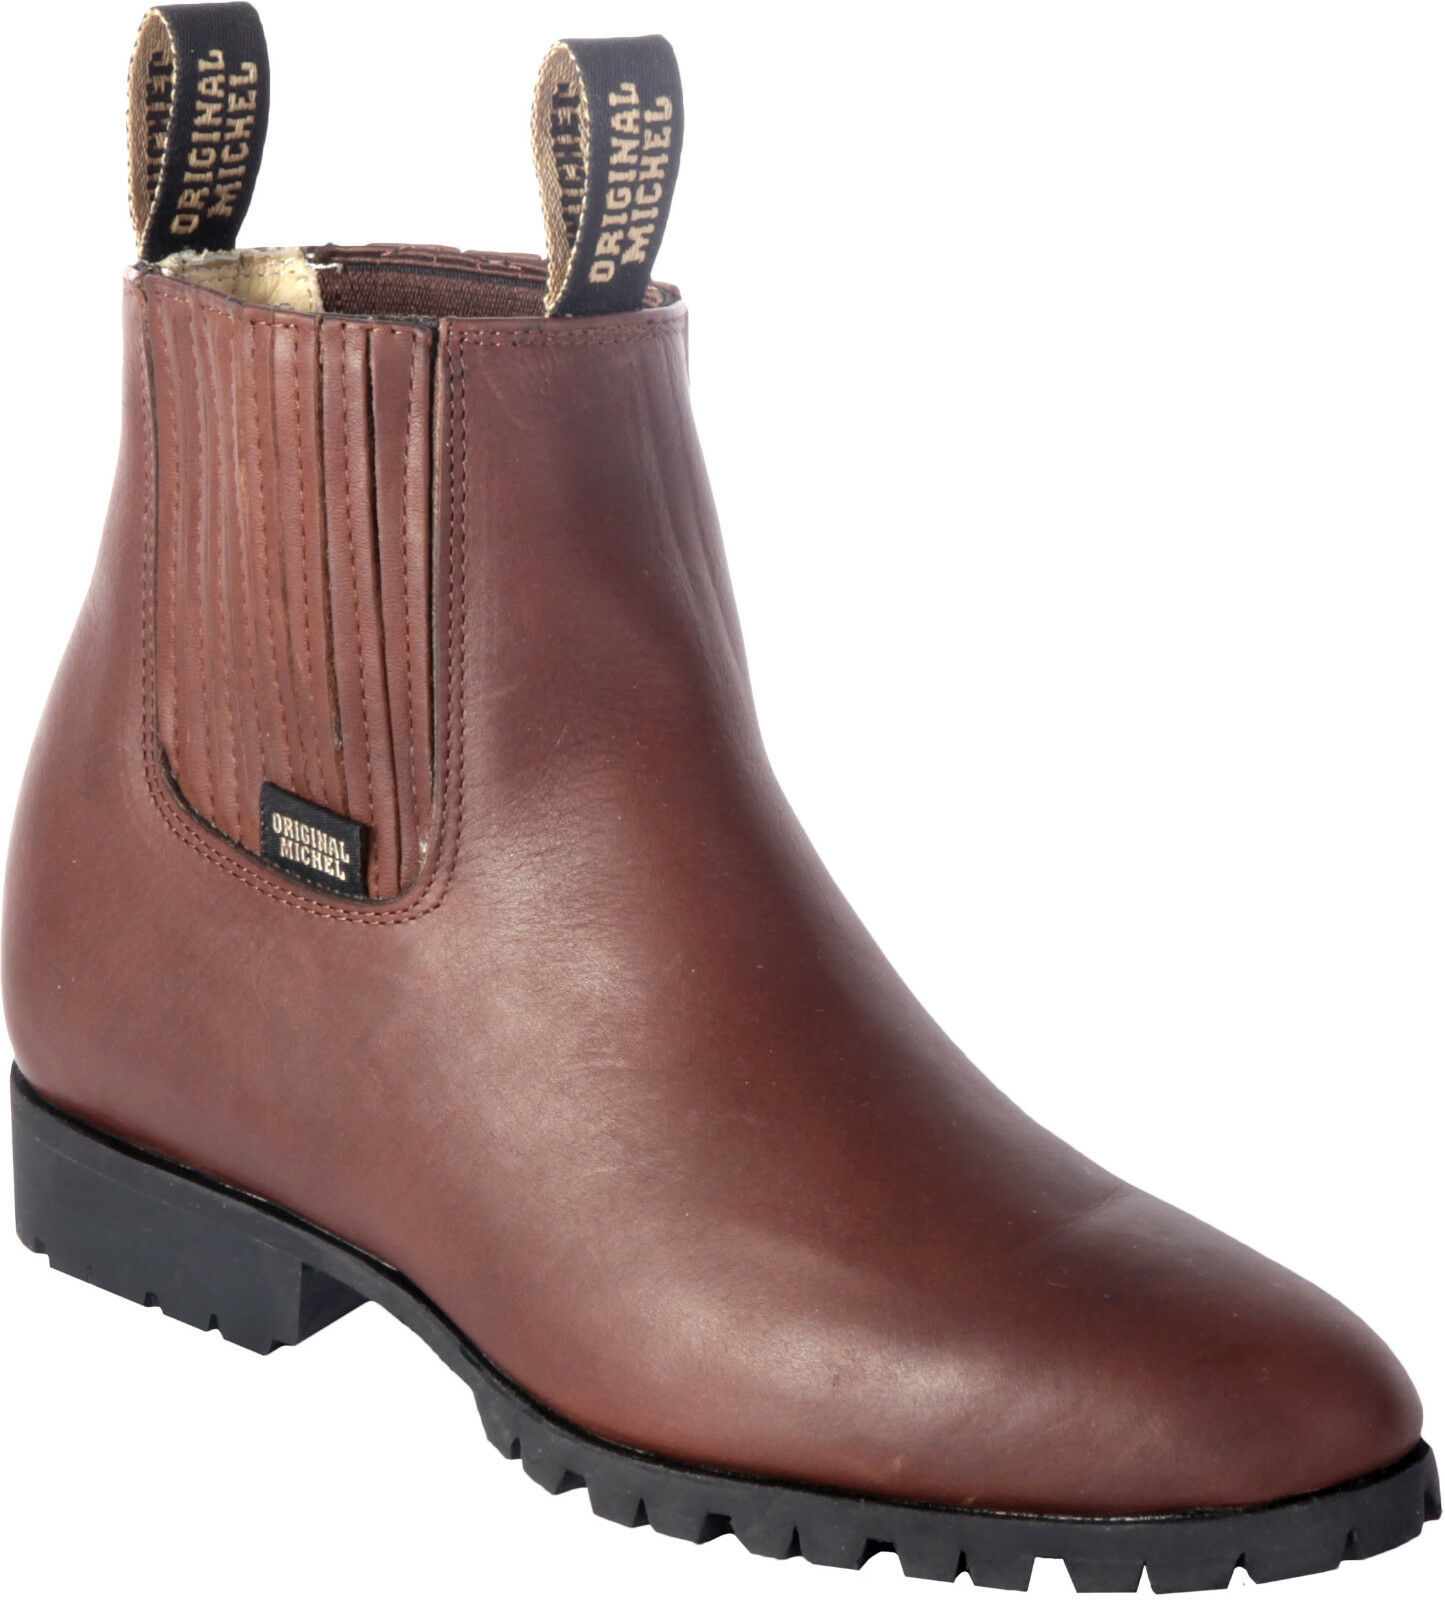 Men's Original Michel Genuine Cowhide Leather Ankle Work Boots Industrial Sole